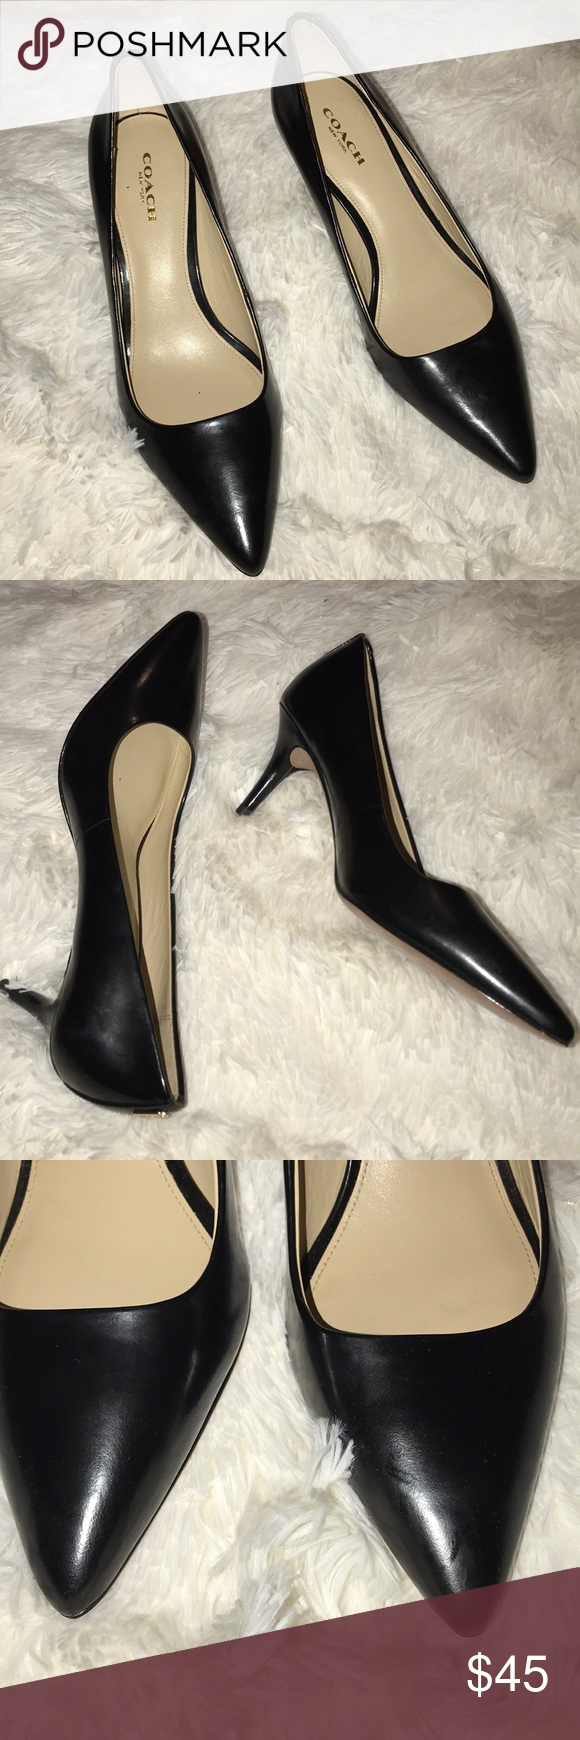 5bbe2451c7d ⭐️Coach kitten heels size 7⭐ GORGEOUS Black leather pumps with pointed toe  and 3 inch heel. Small scuff on left heel. Slight wear but overall great ...